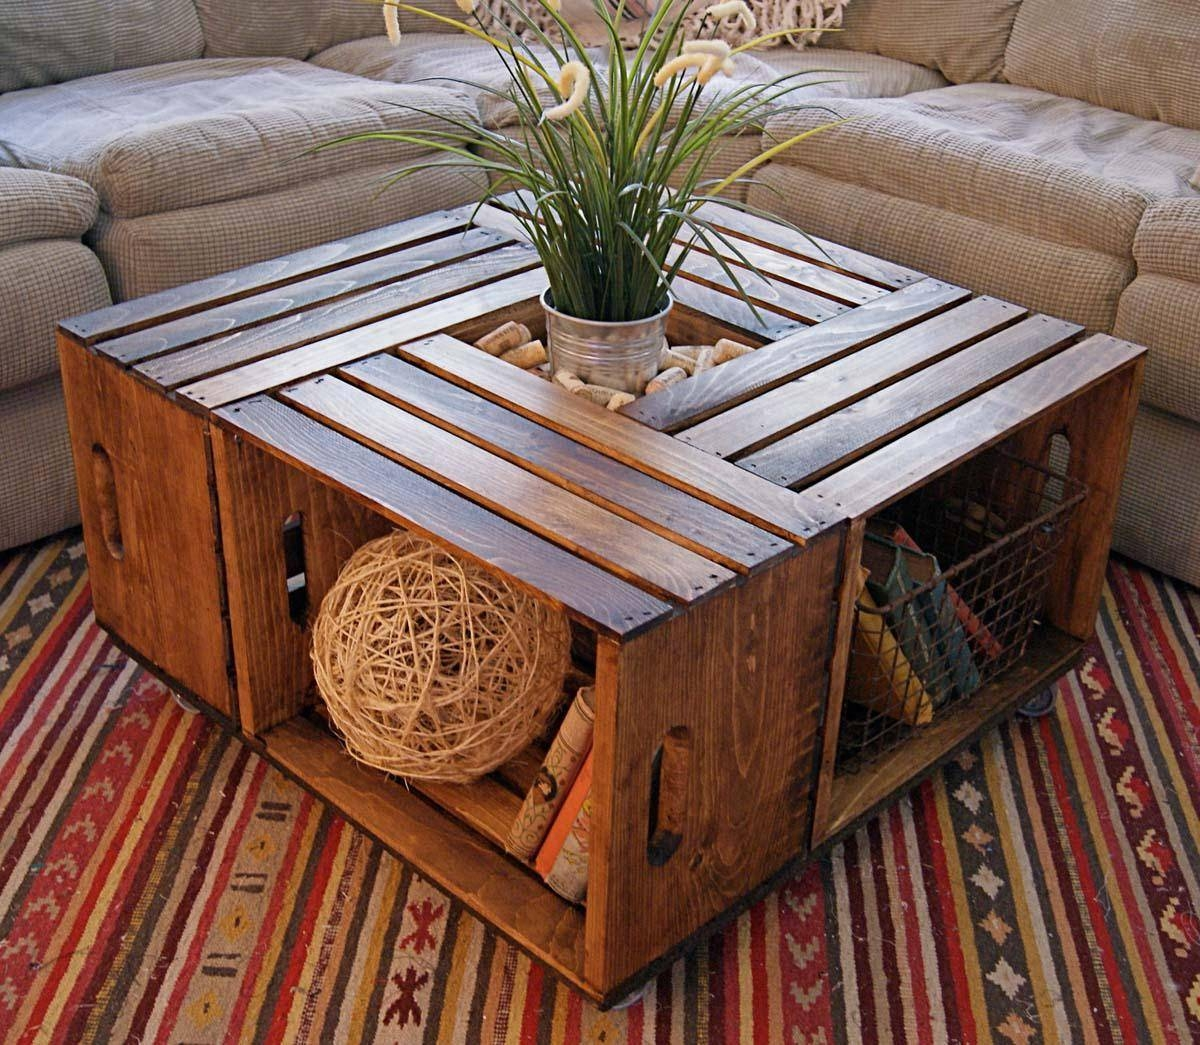 Large Wooden Coffee Table regarding Large Wood Coffee Tables (Image 10 of 15)